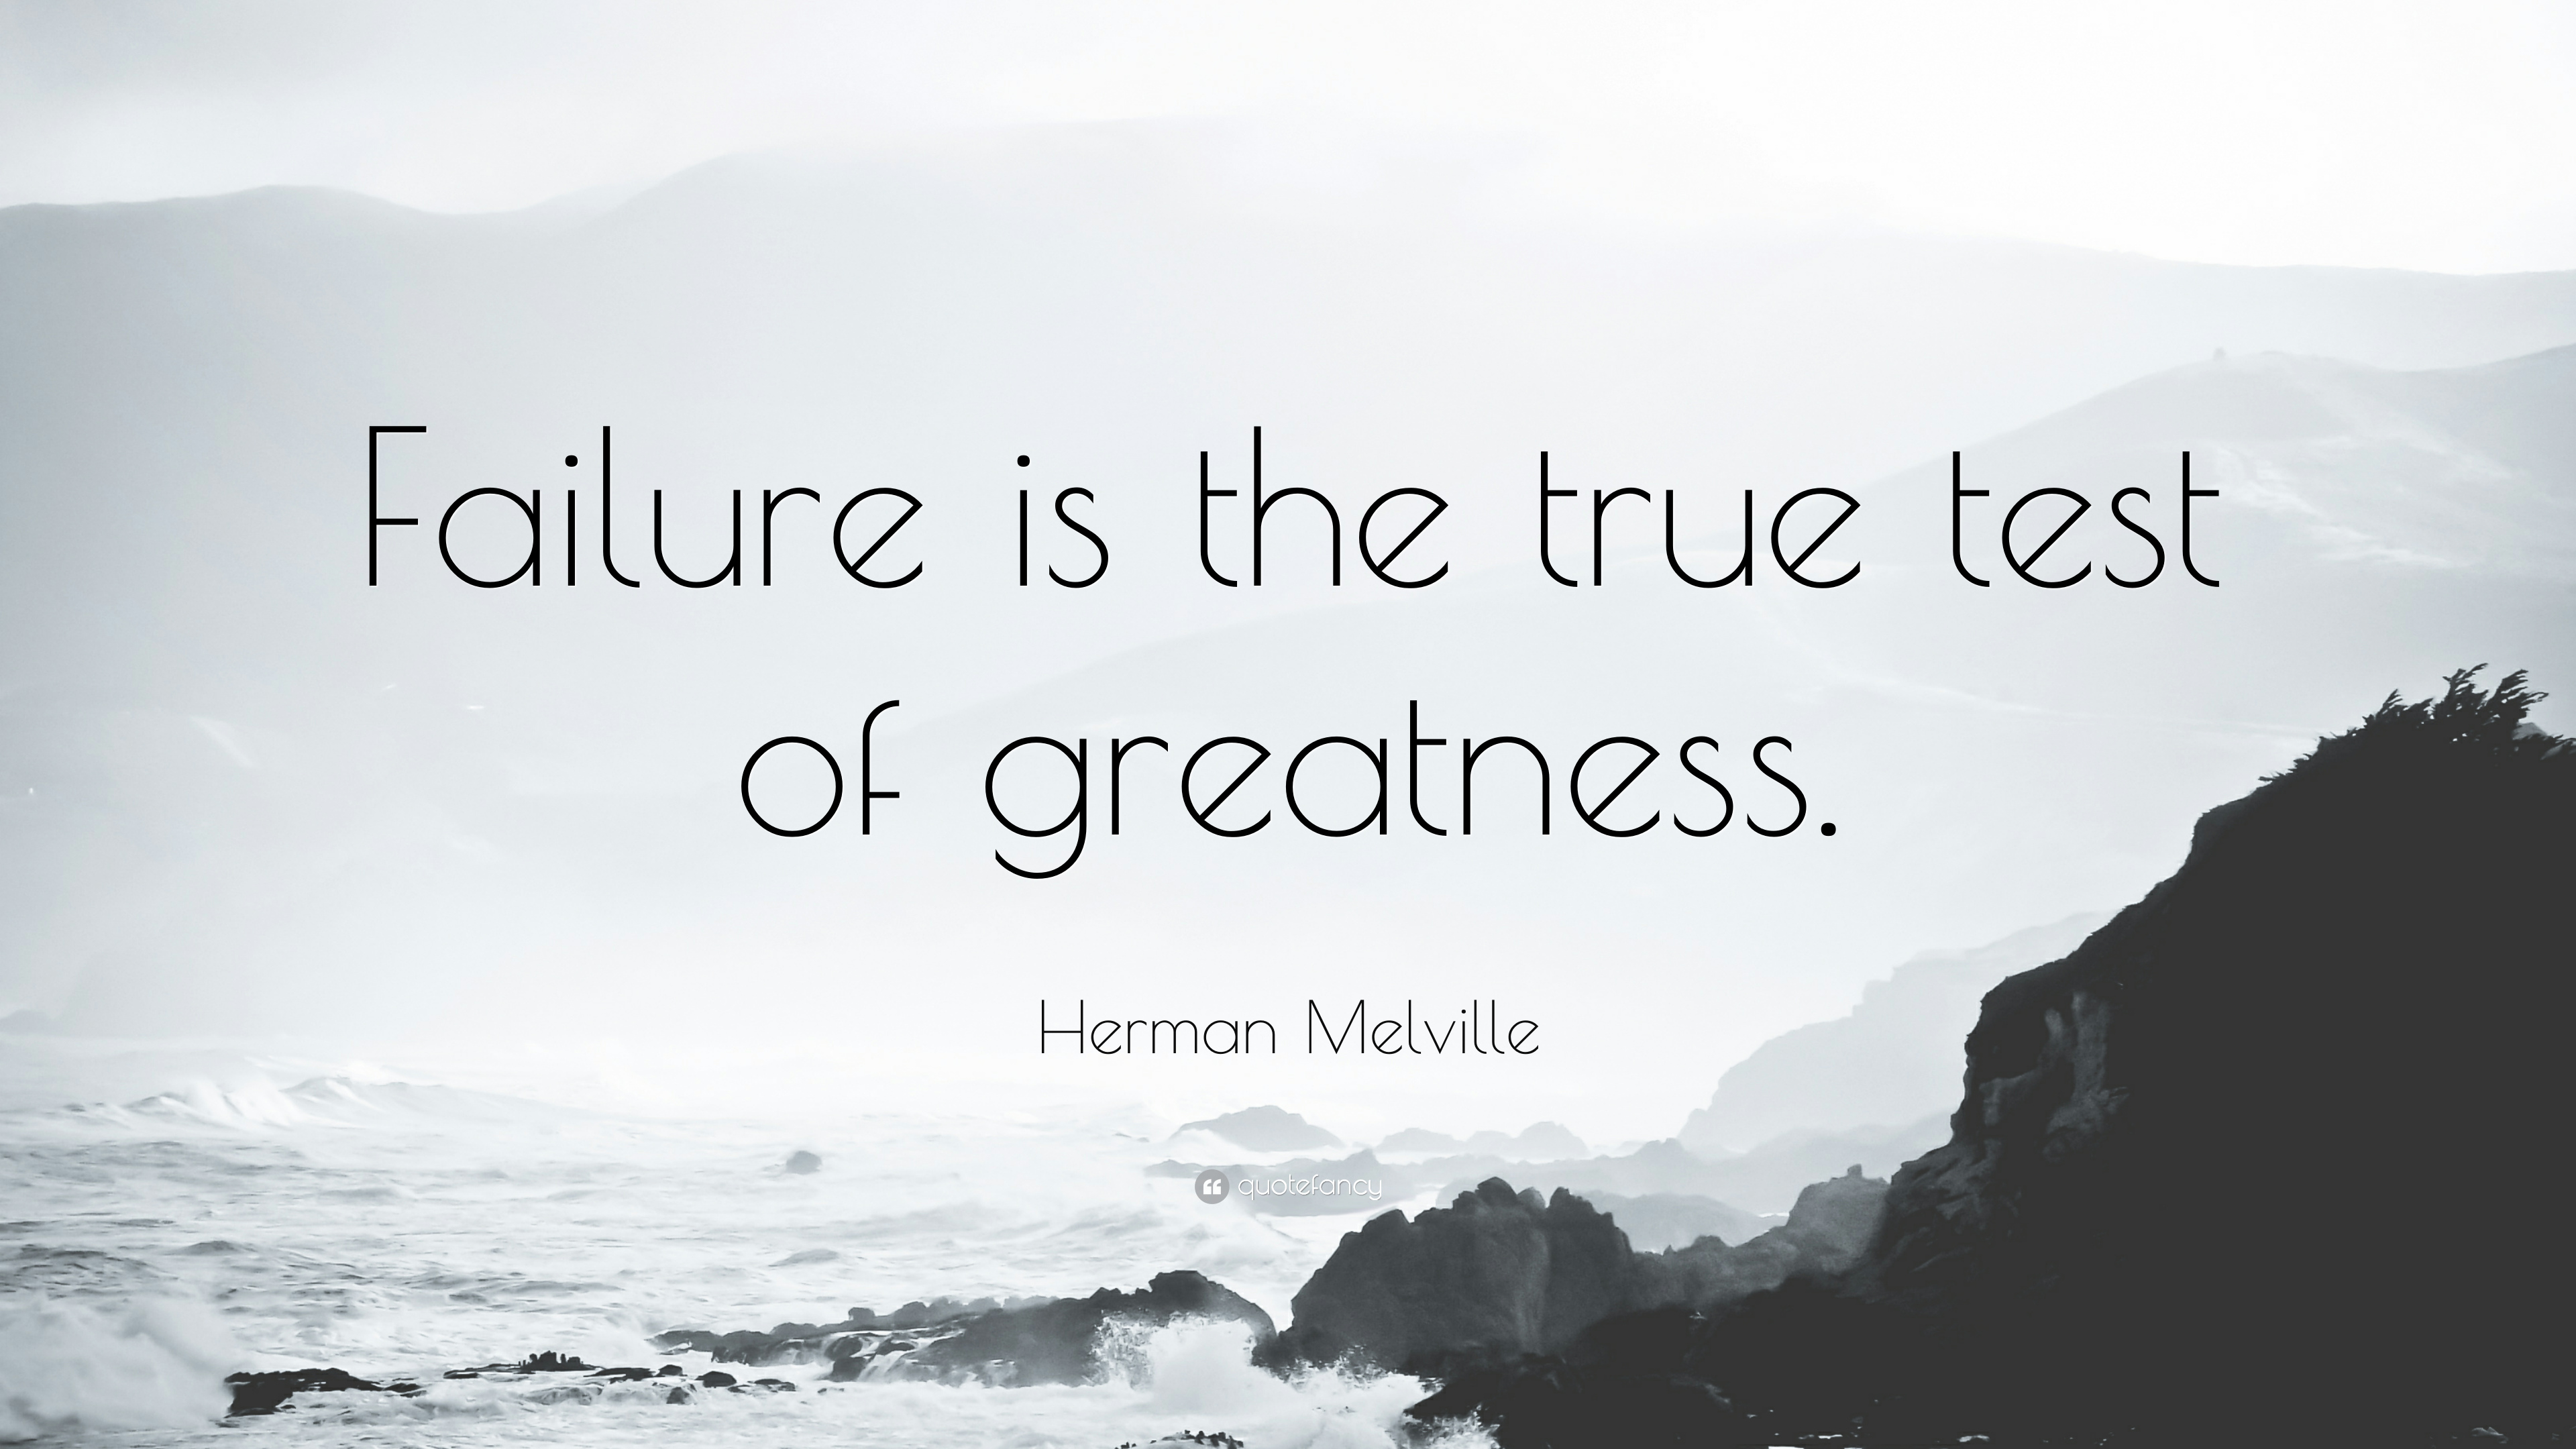 Herman Melville Quote: U201cFailure Is The True Test Of Greatness.u201d